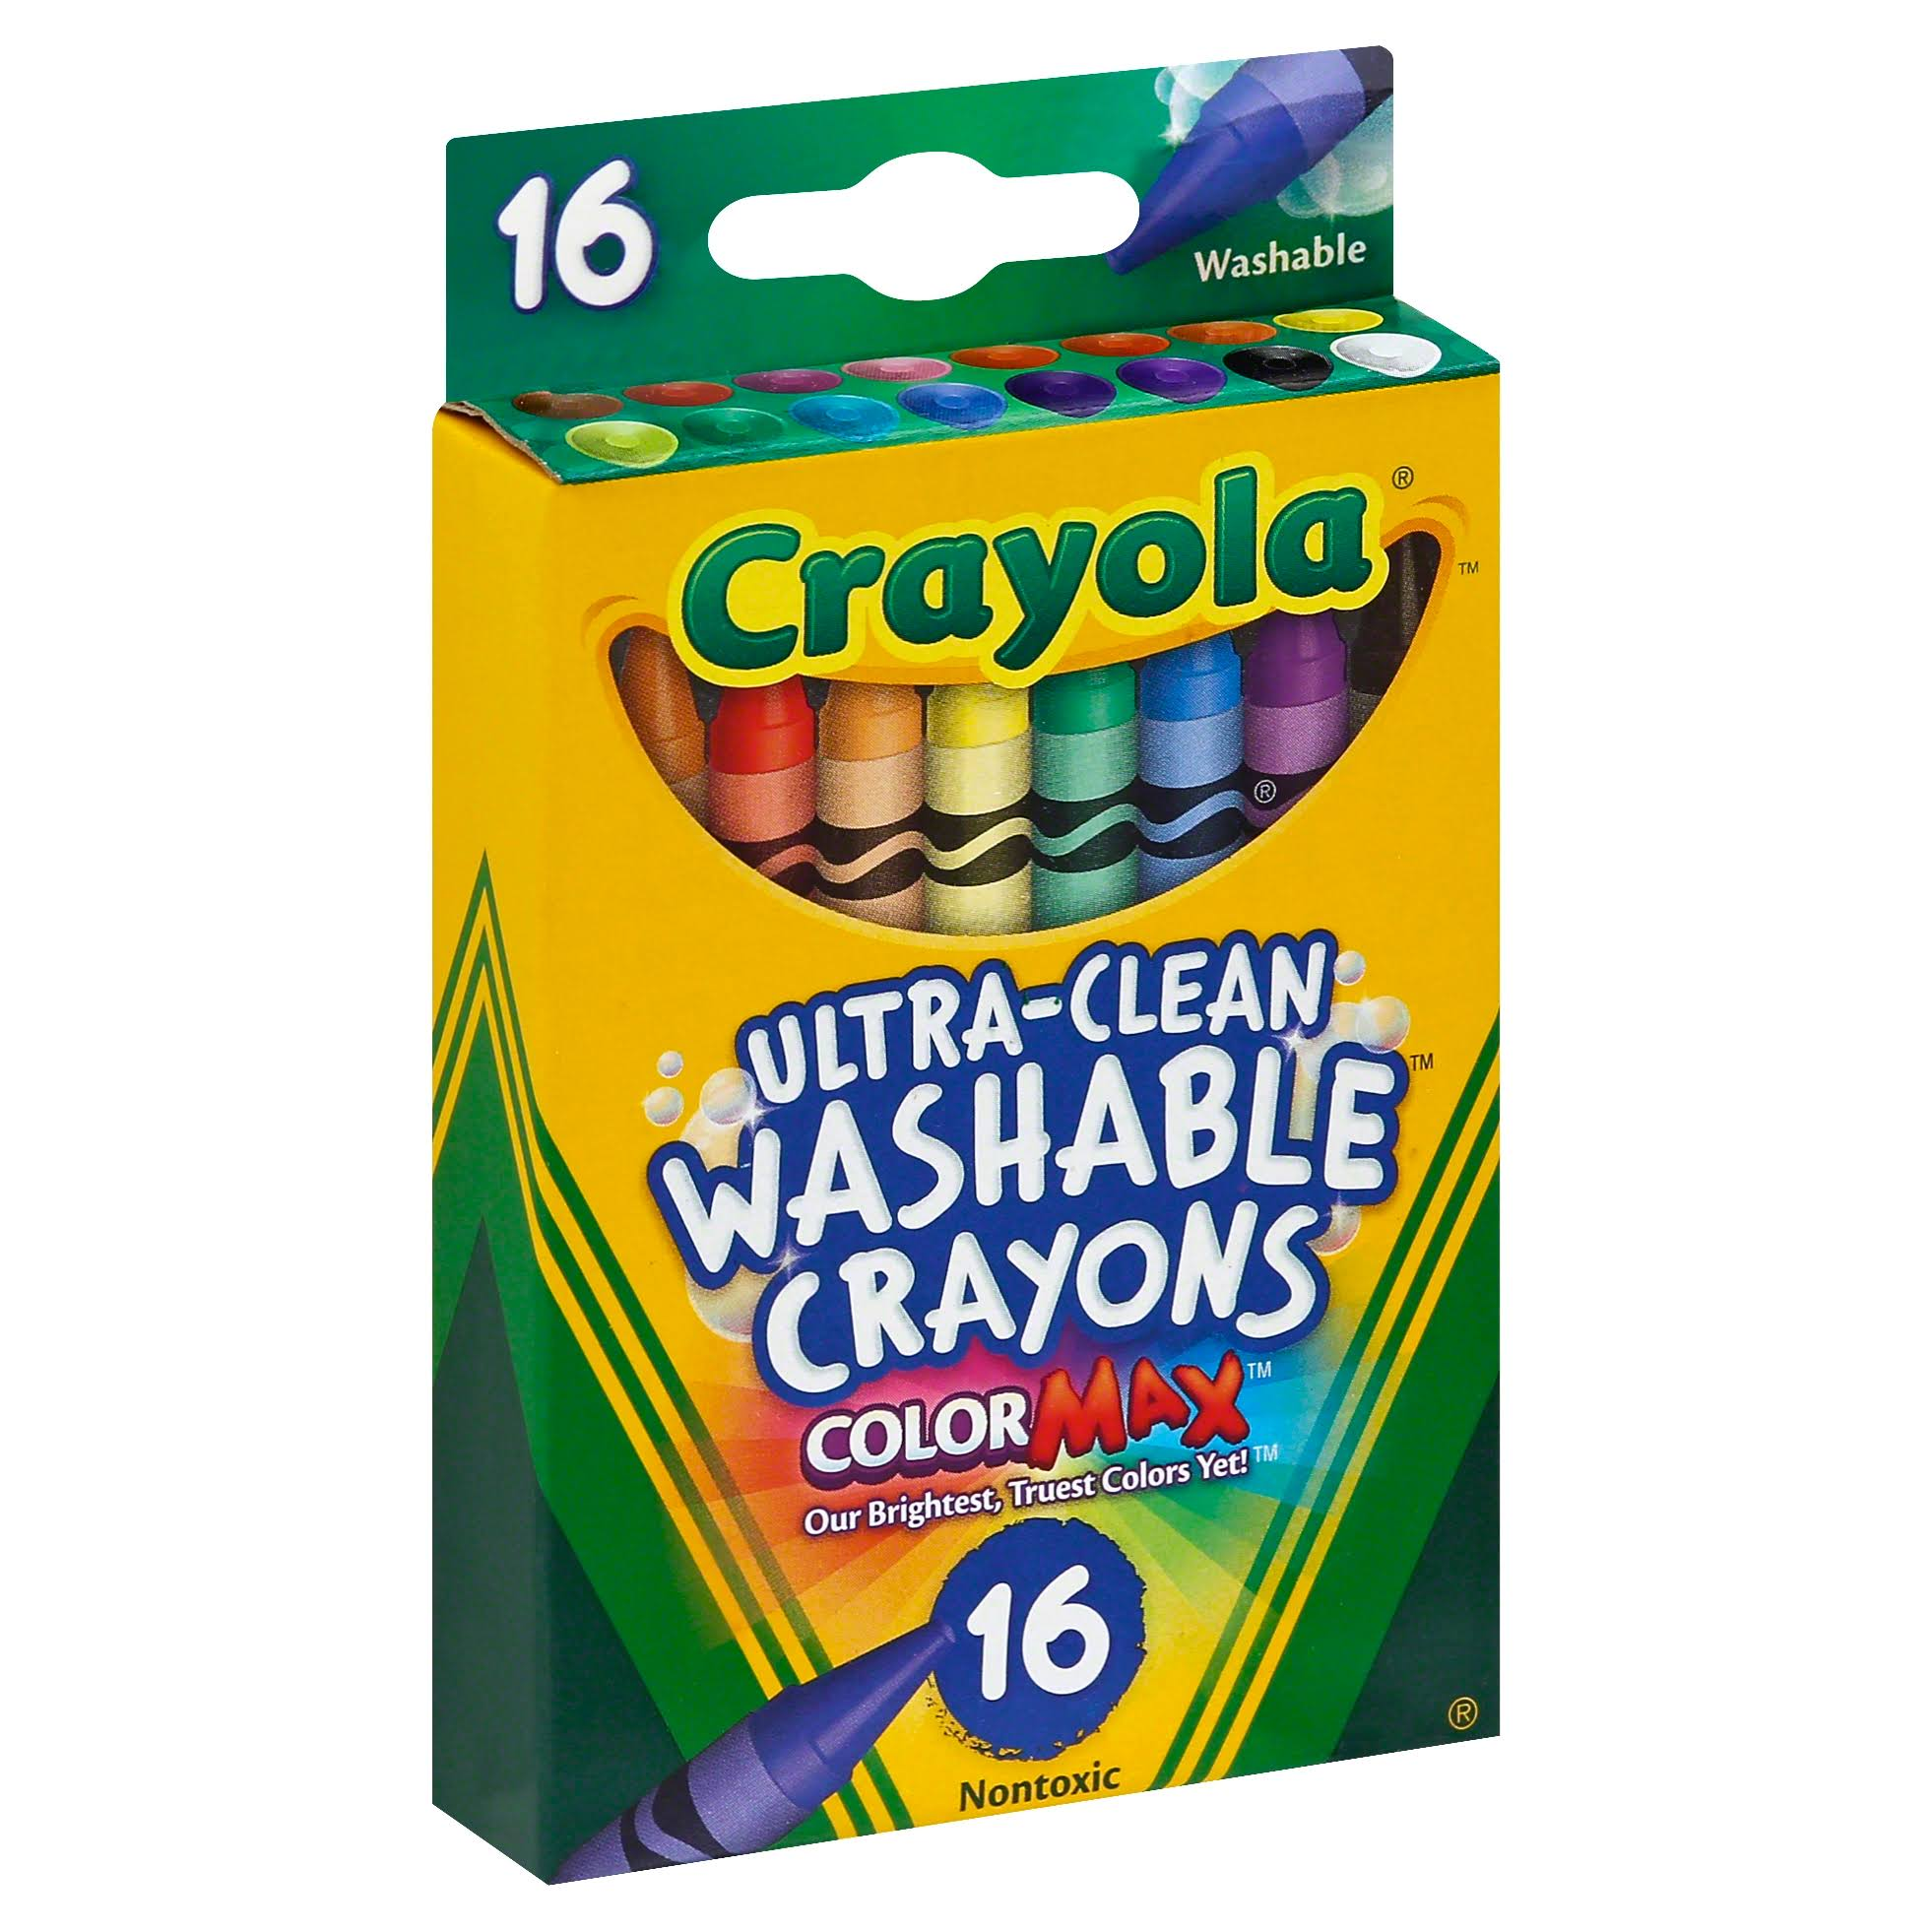 Crayola Washable Crayon - 16 Pack